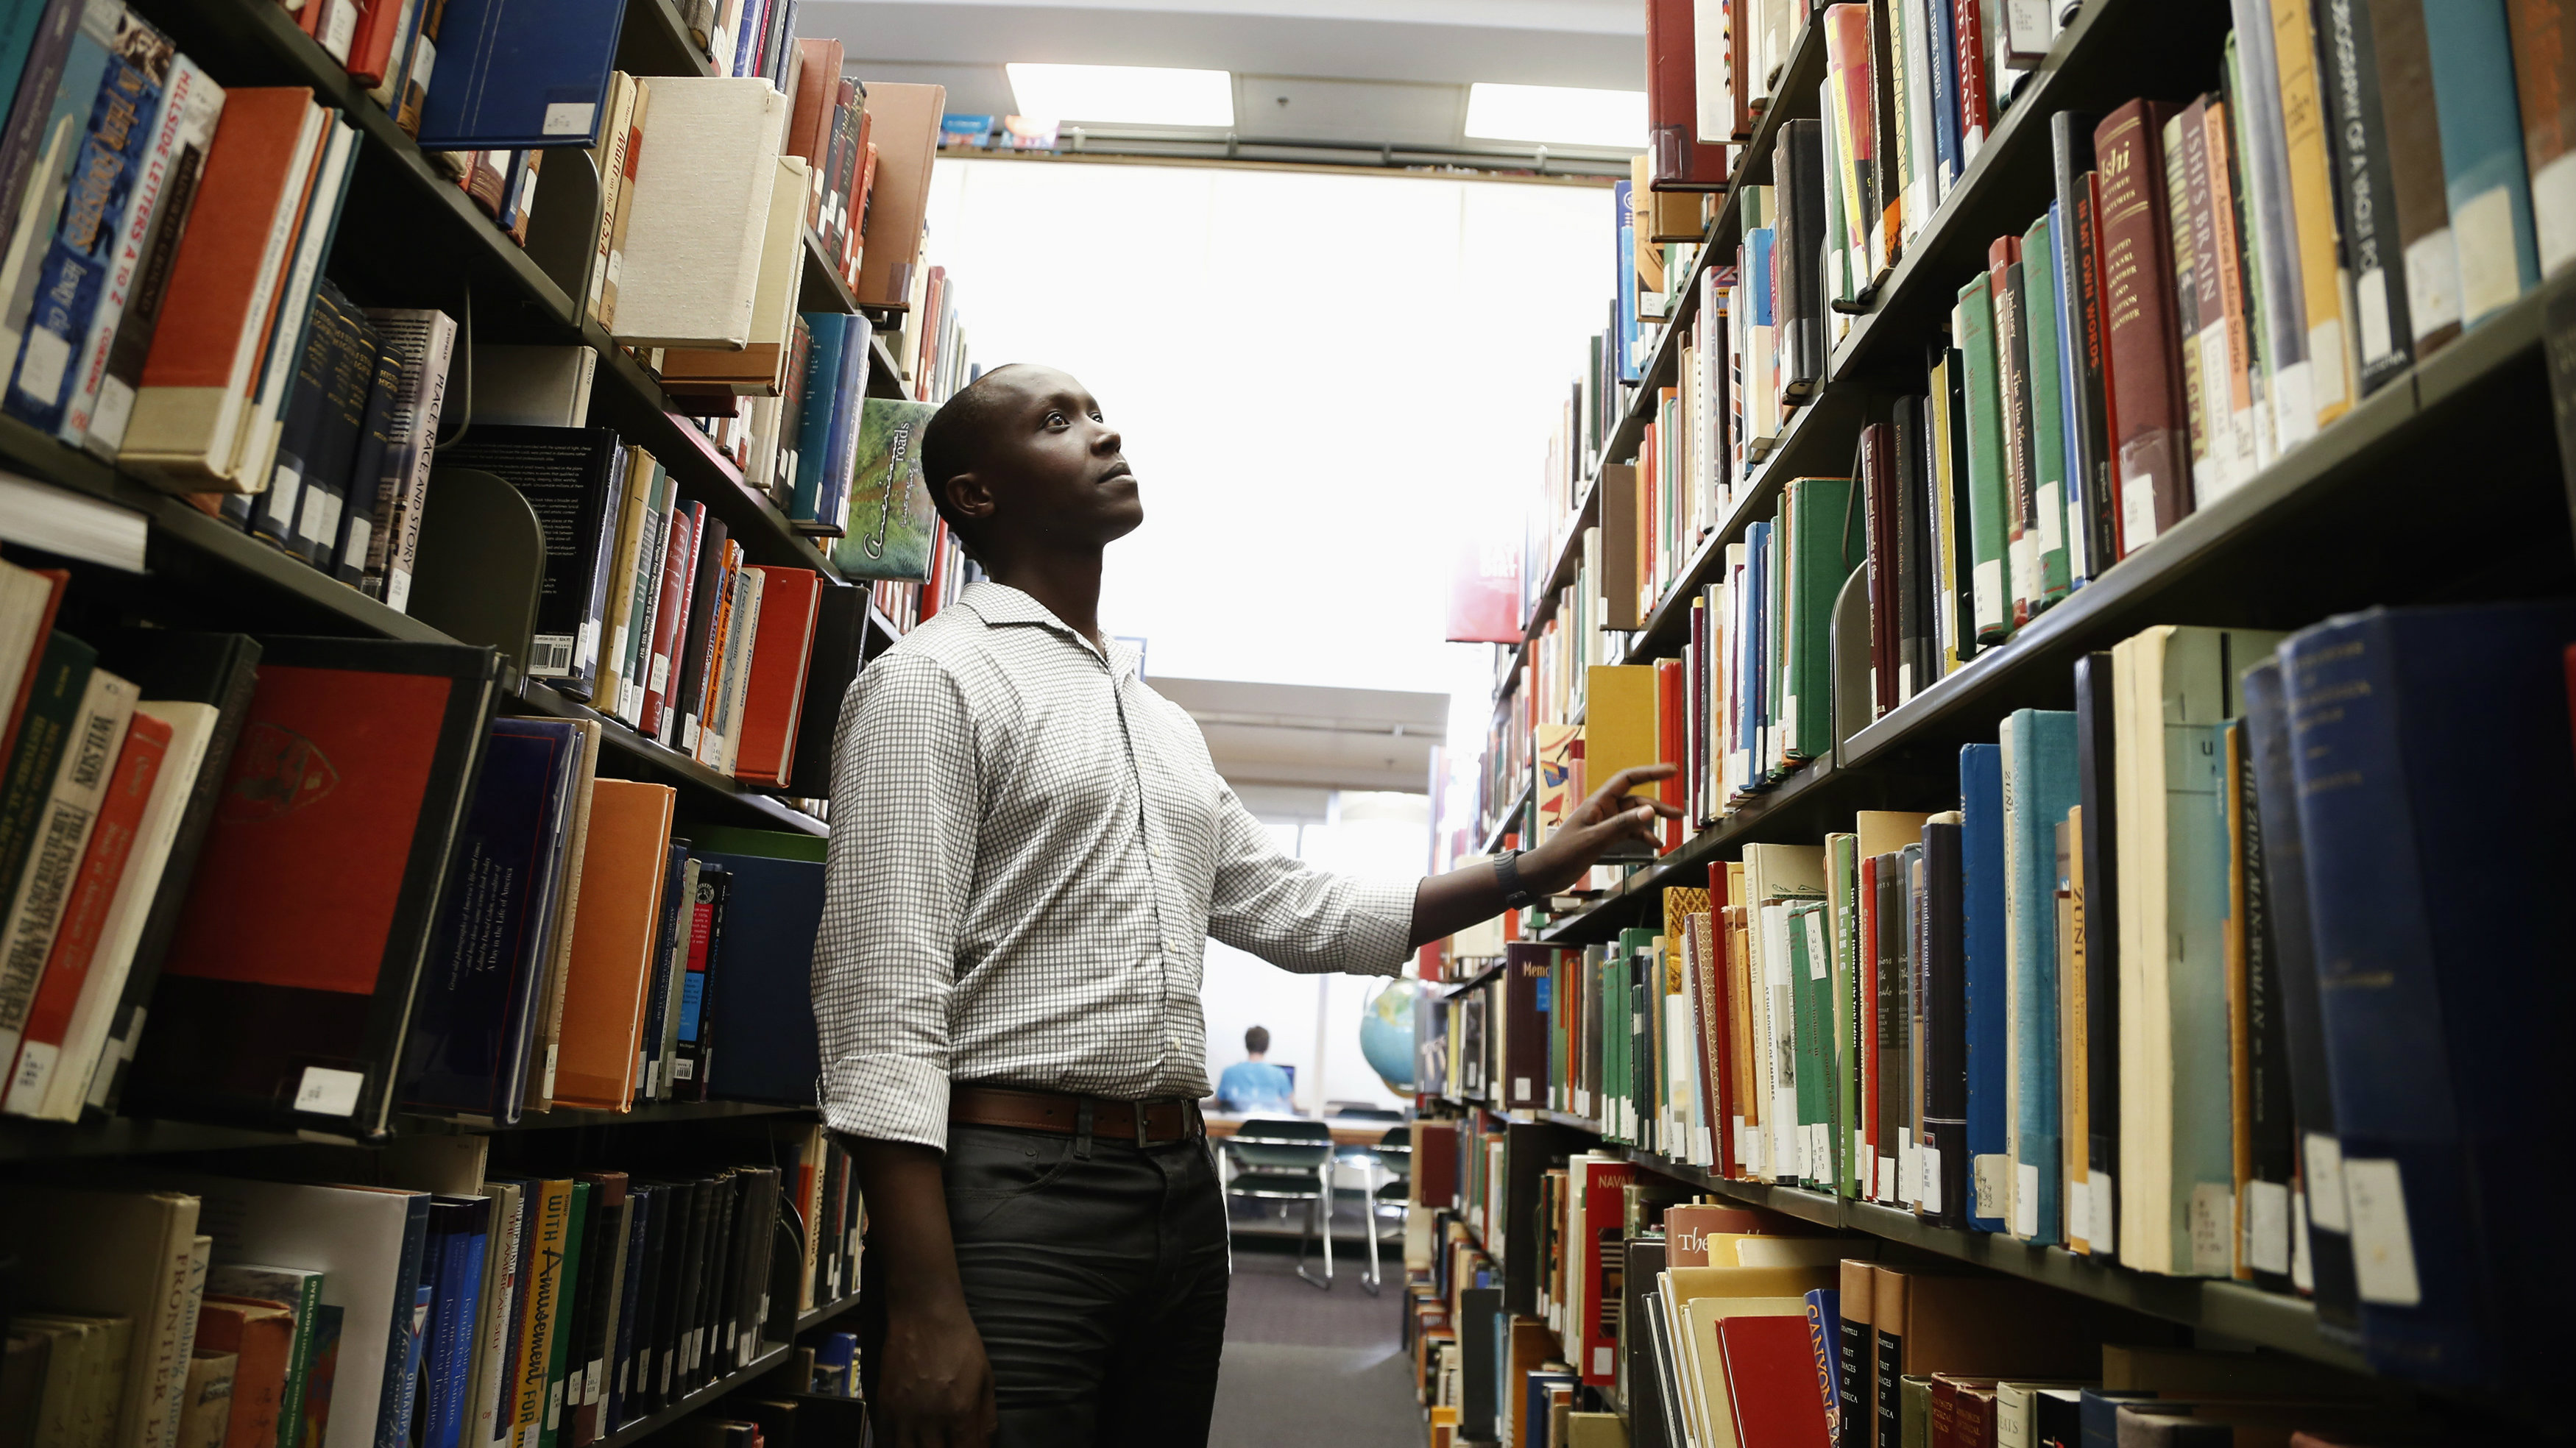 Patrick Manyika, 33, of Rwanda looks for a book in the library at the University of Redlands where he will starting his second master's degree in Geographic Information Systems, in Redlands, California May 28, 2014. Manyika was born in a Ugandan refugee camp after his Tutsi family fled Rwanda. In 1983, unrest forced them back to Rwanda, where they lived first in a national park, then in the capital. Manyika survived the Rwandan genocide of 1994, in which 800,000 Tutsis and moderate Hutus were killed, by sheltering in a UN-controlled soccer stadium. After doing charity work and teaching himself various languages, in 2009 he had the opportunity to leave Rwanda and pursue his education in the United States. He is now about to start his second Masters degree. June 20 is World Refugee Day, an occasion that draws attention to those who have been displaced around the globe. In the run-up to the date, Reuters photographers in different regions have photographed various people who have at some point fled their homes. Picture taken May 28, 2014. REUTERS/Lucy Nicholson (UNITED STATES - Tags: SOCIETY IMMIGRATION POLITICS EDUCATION)